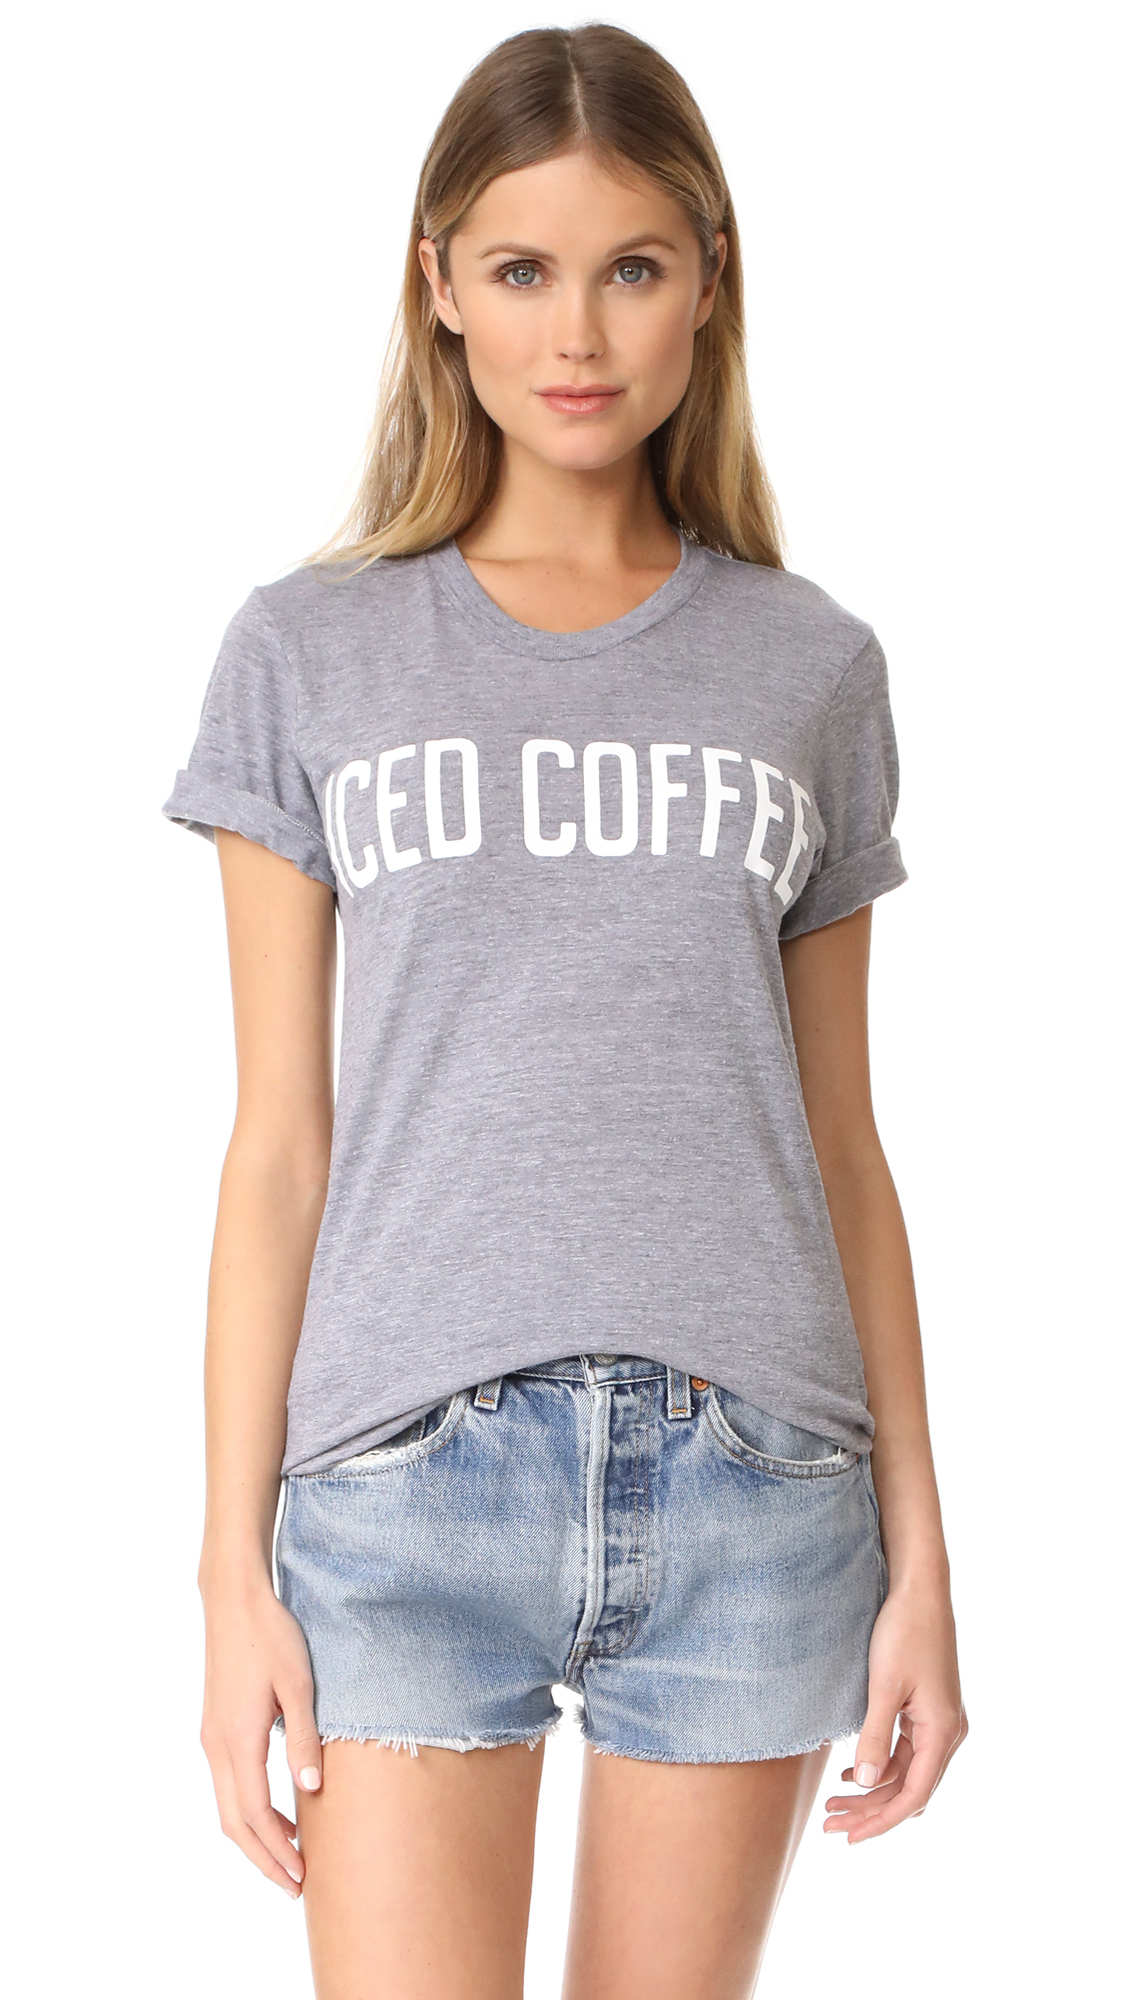 Private Party Iced Coffee Tee - Grey